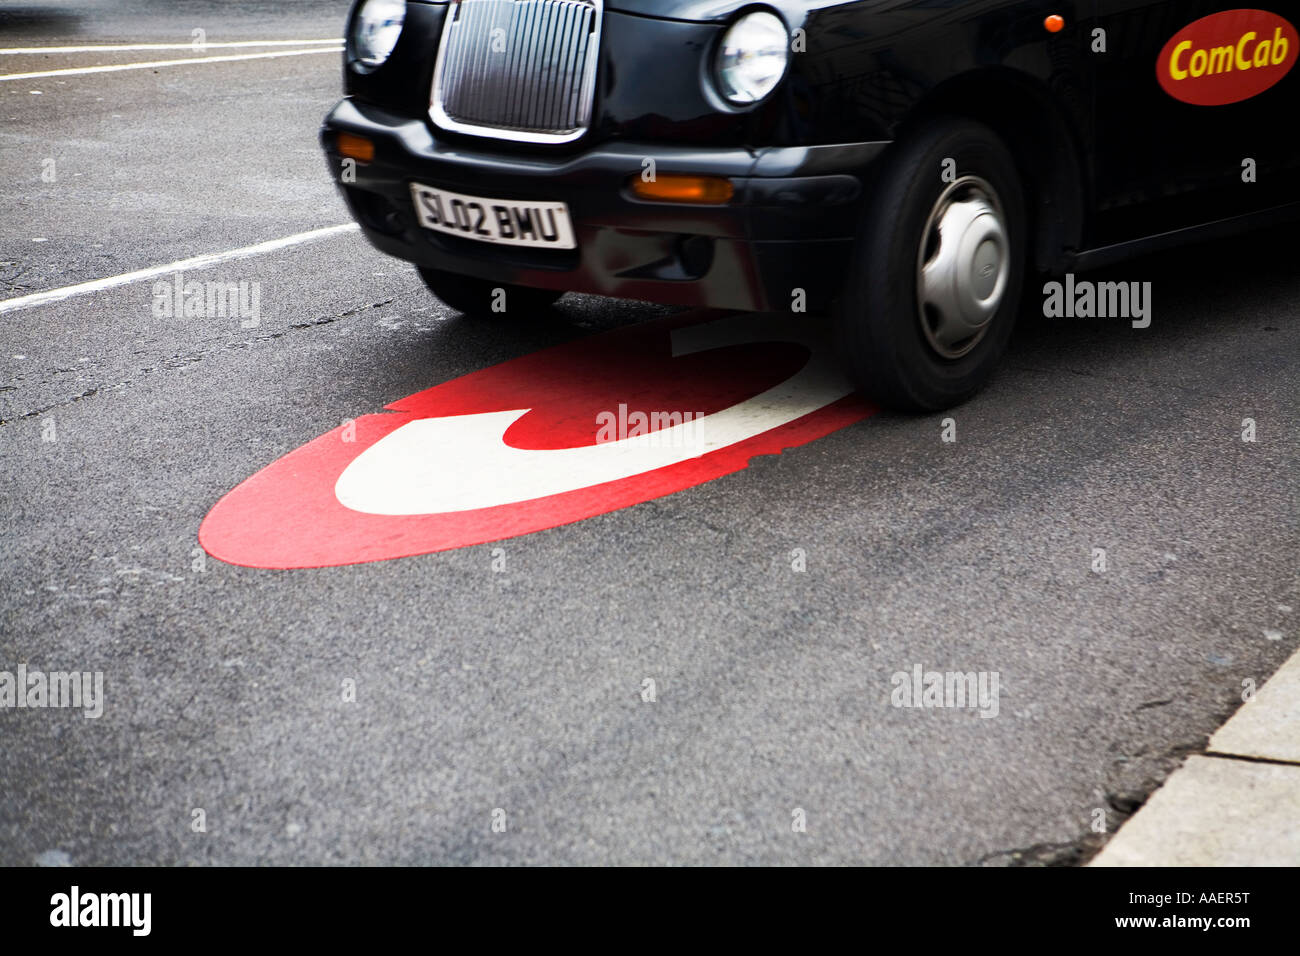 Congestion charge signe à Knightsbridge Londres Photo Stock